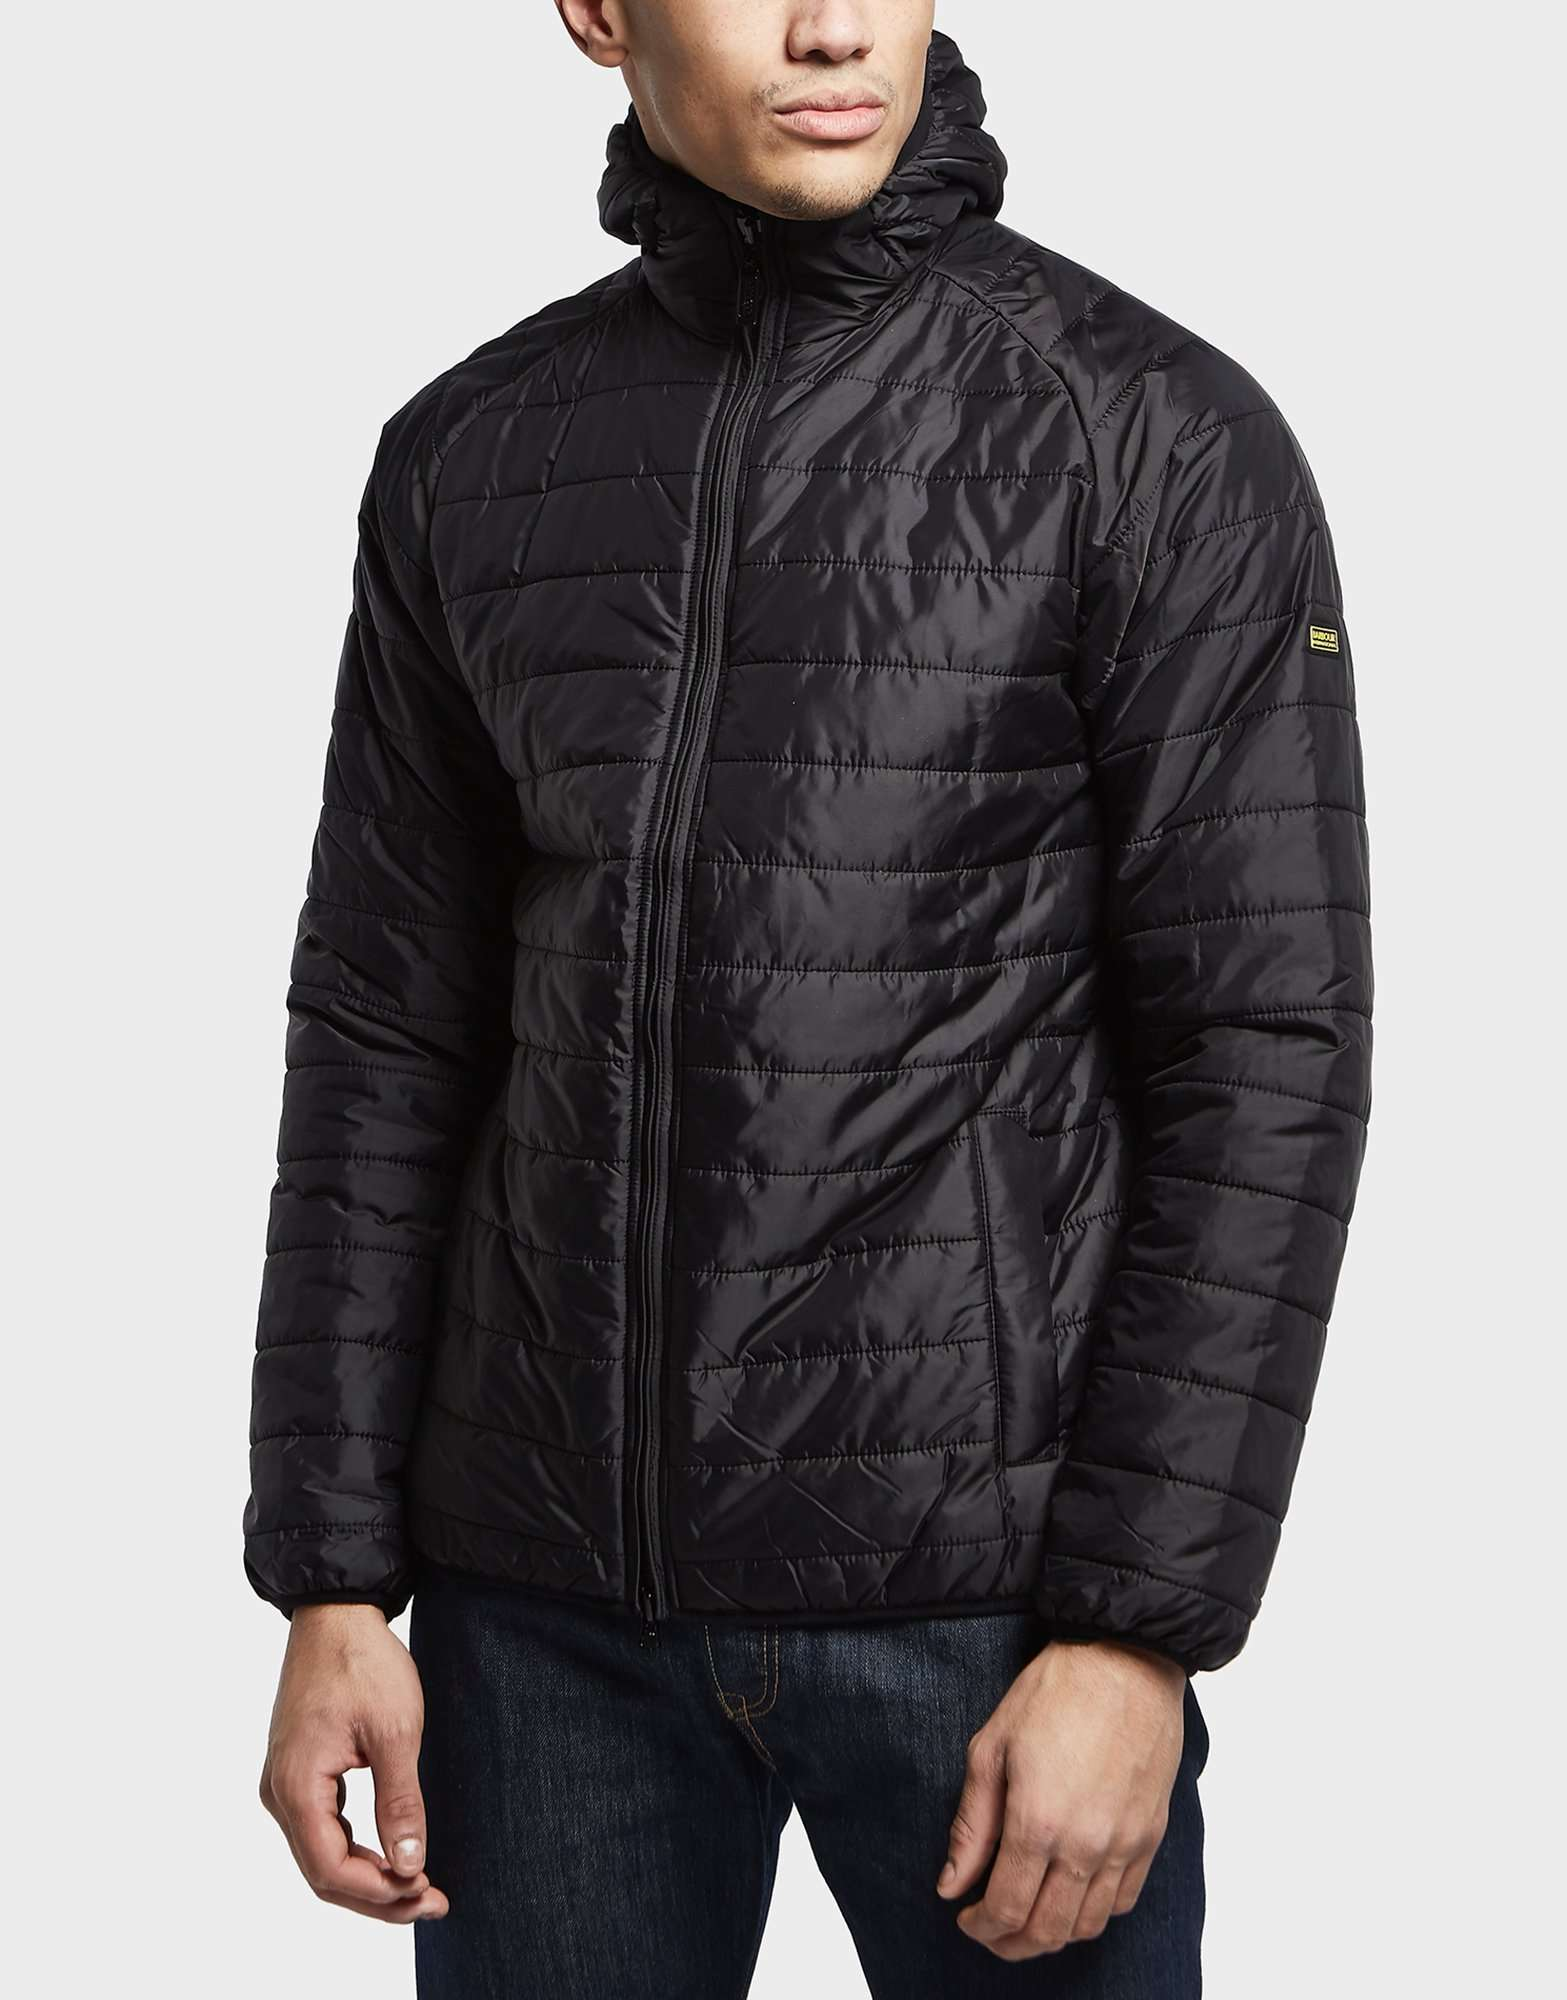 jacket final quilt lined crosshatch coat winter itm hooded padded star soul mens puffer quilted